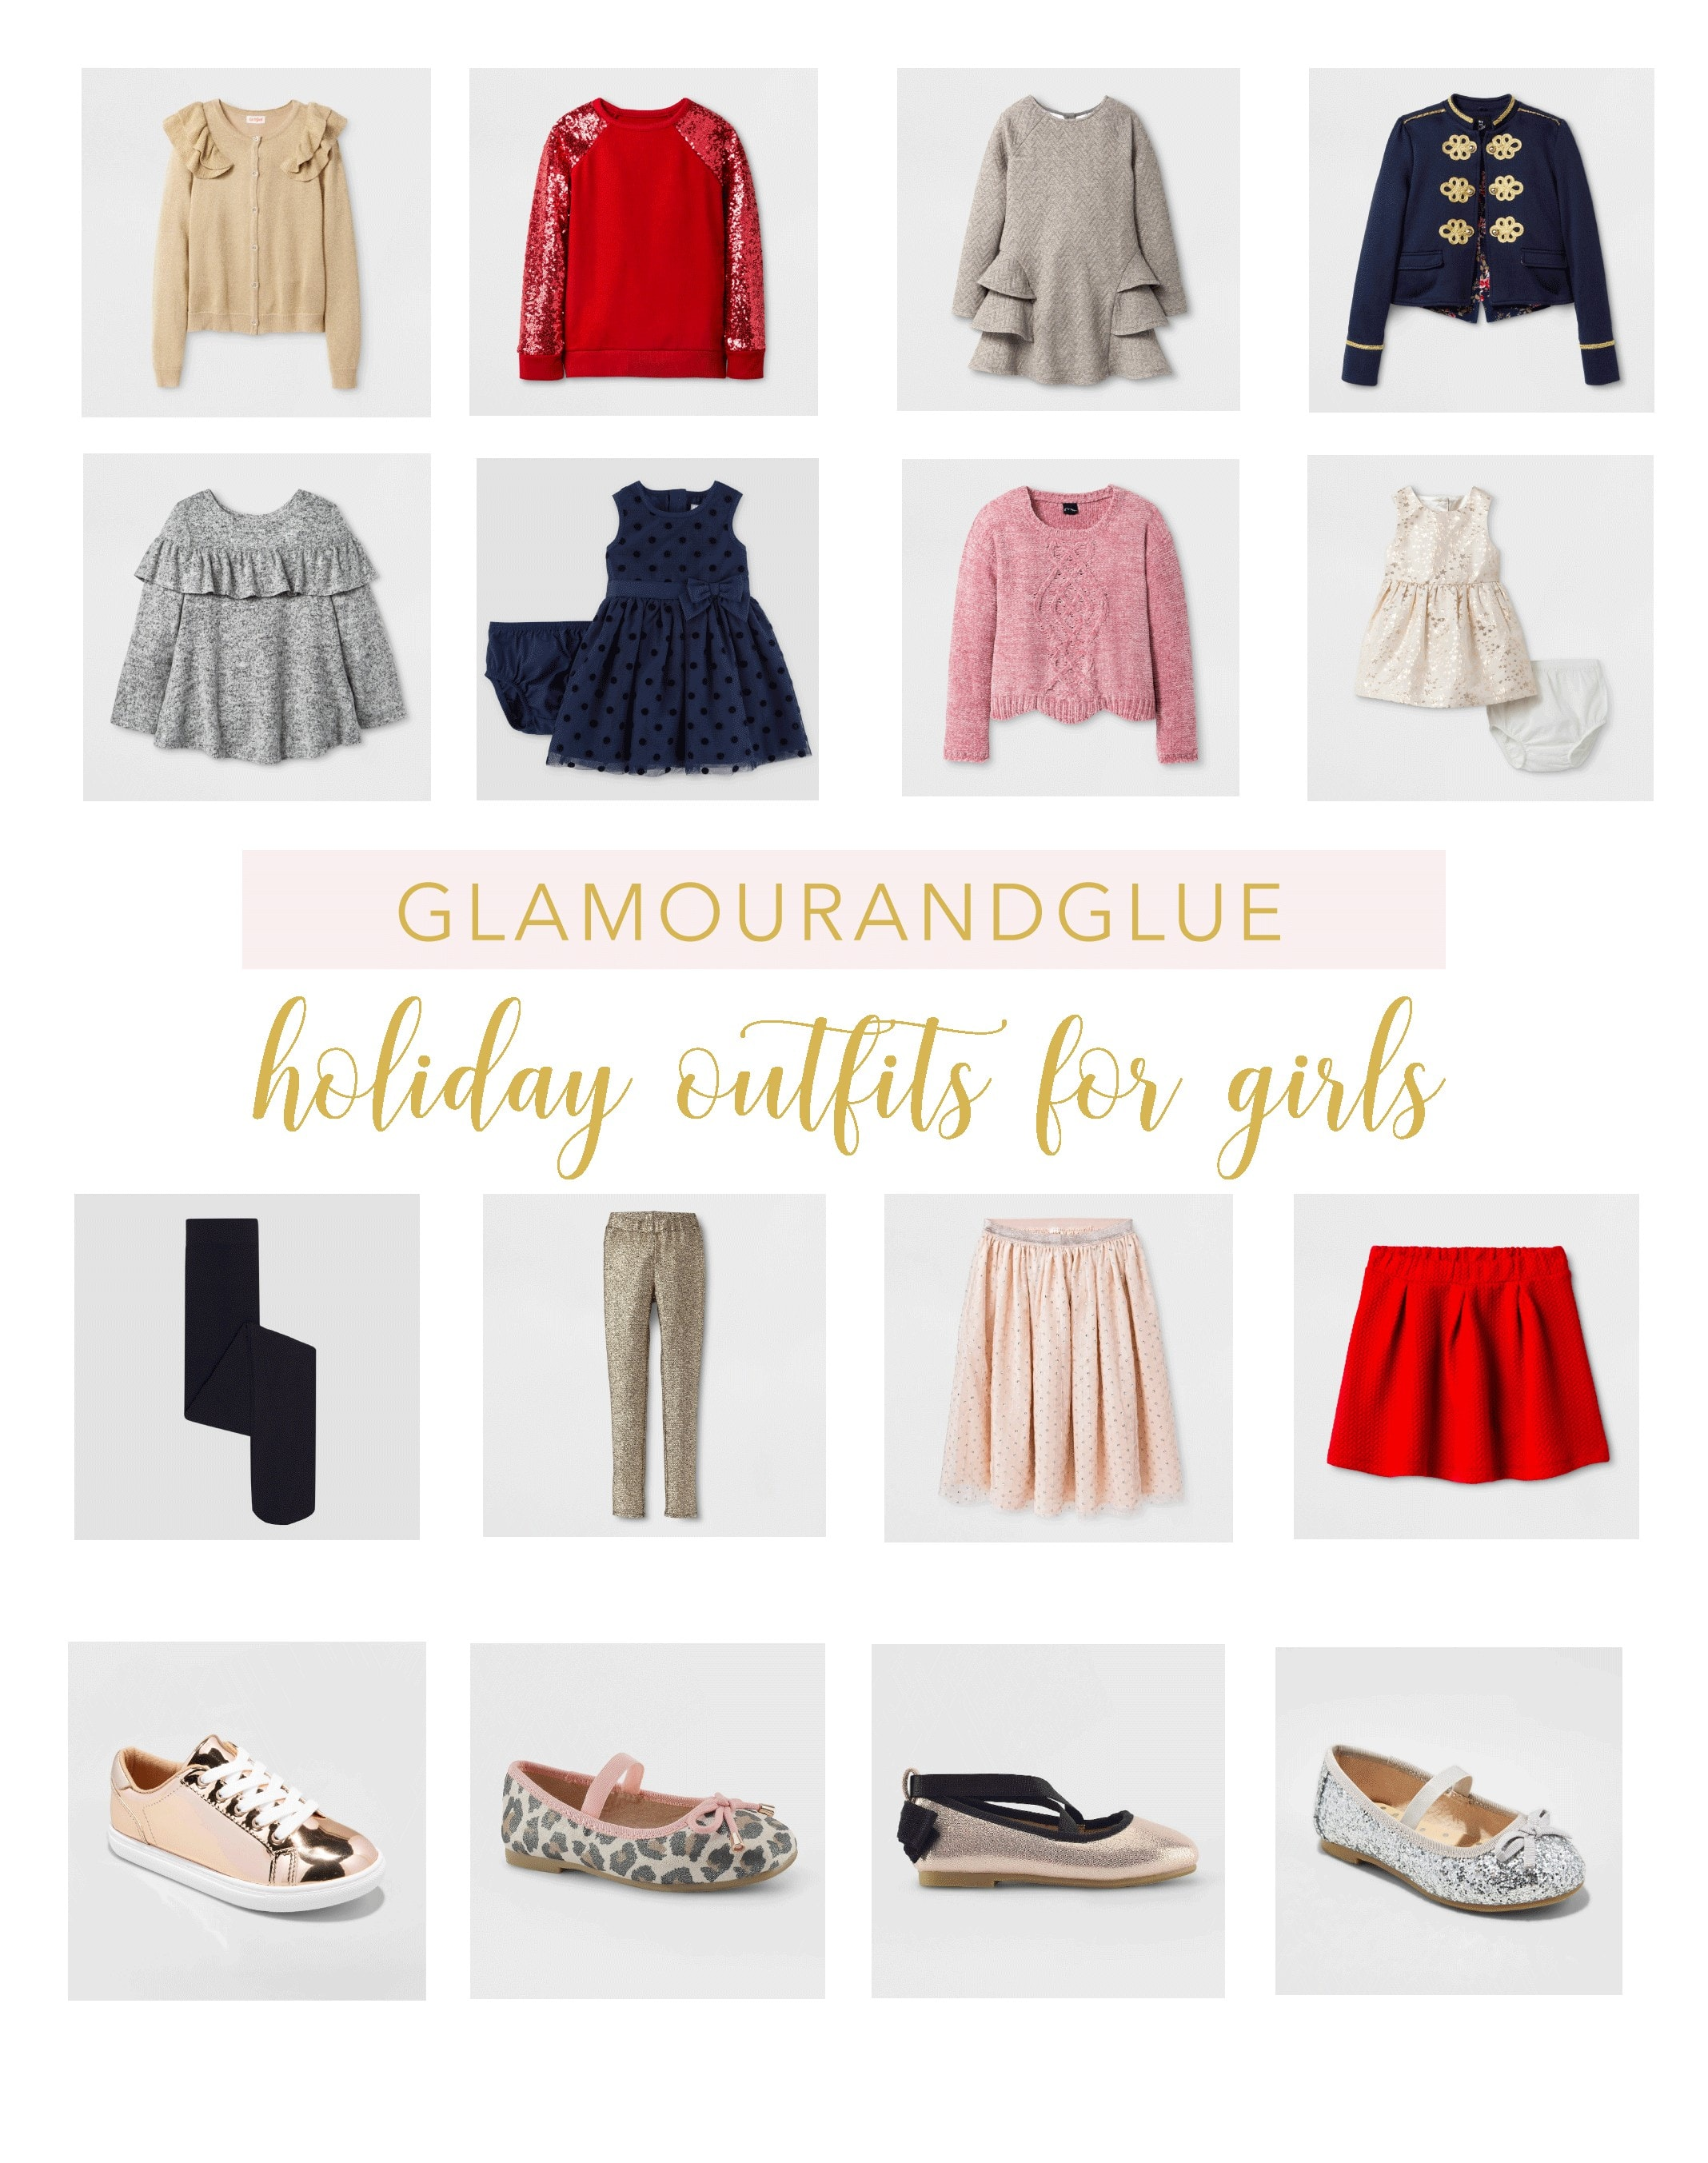 Holiday 2017 Outfits for Girls by Target